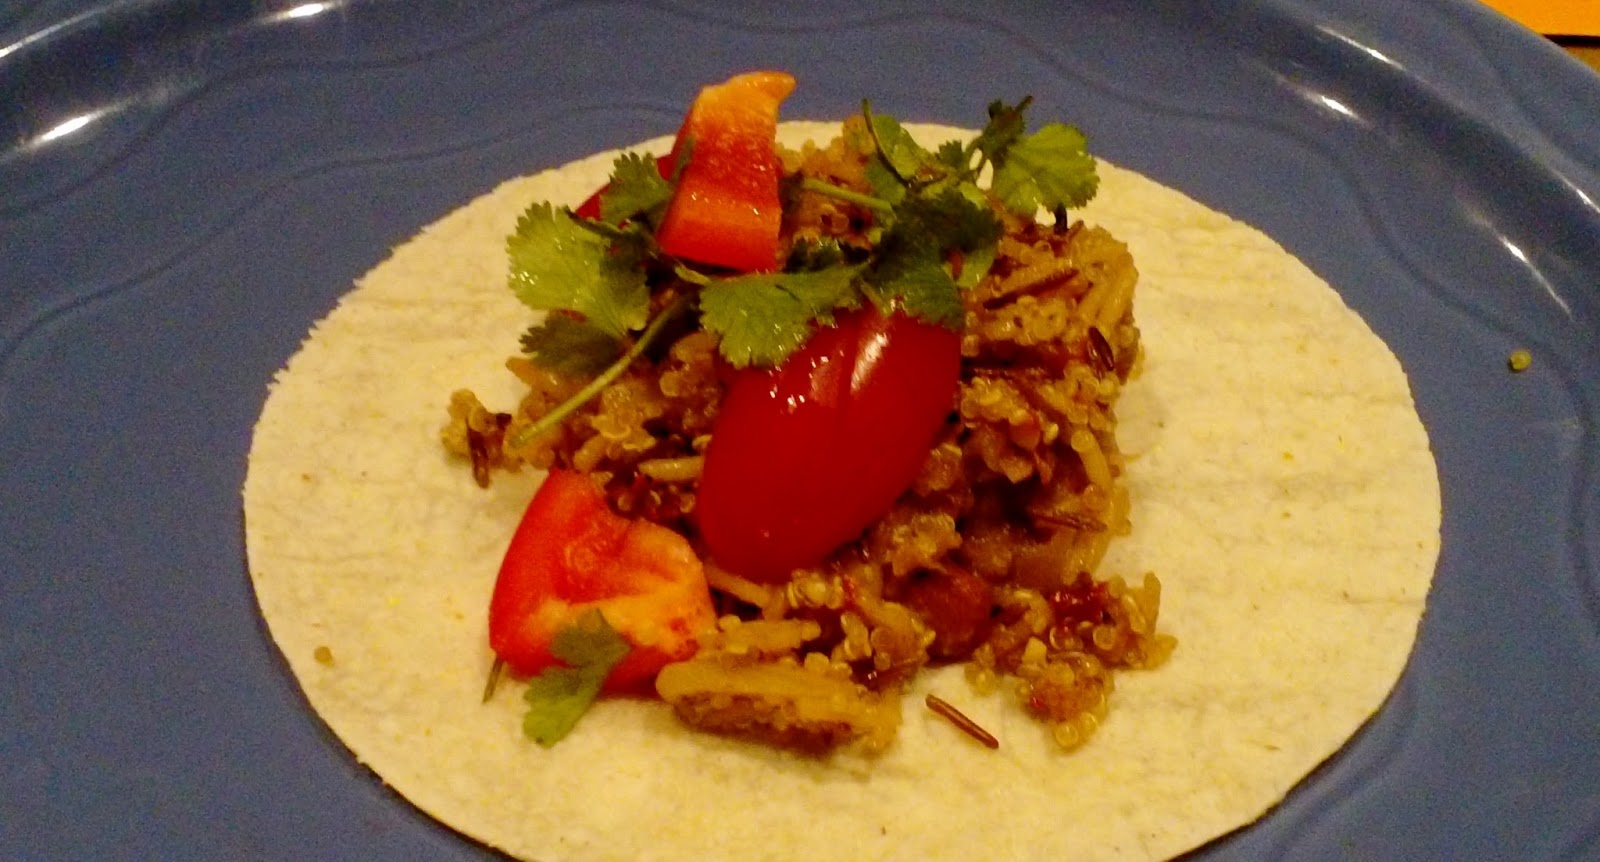 The Omnivore and the Vegetarian: Refried Beans Without the ...